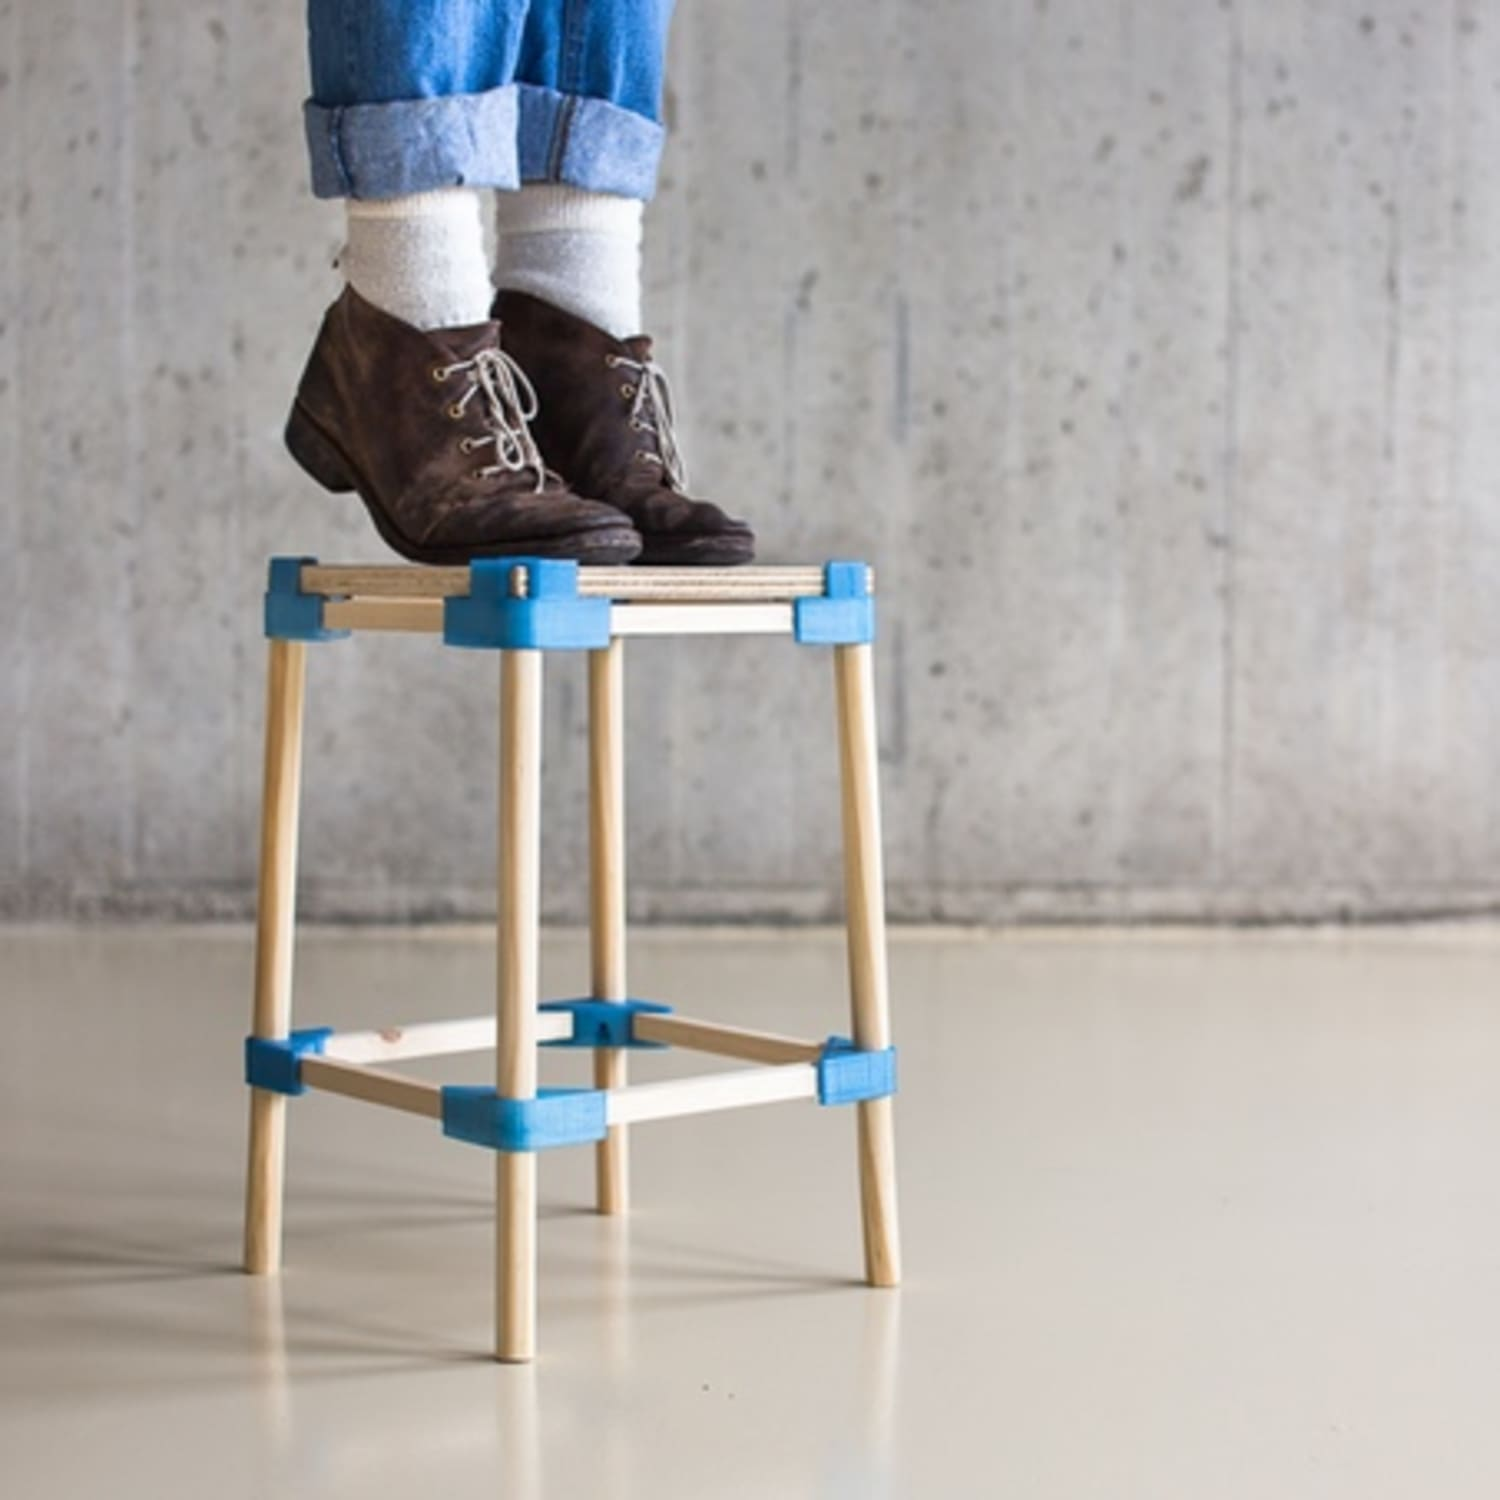 3D Printed Furniture Offered 3 Ways by Standard Products | Apartment